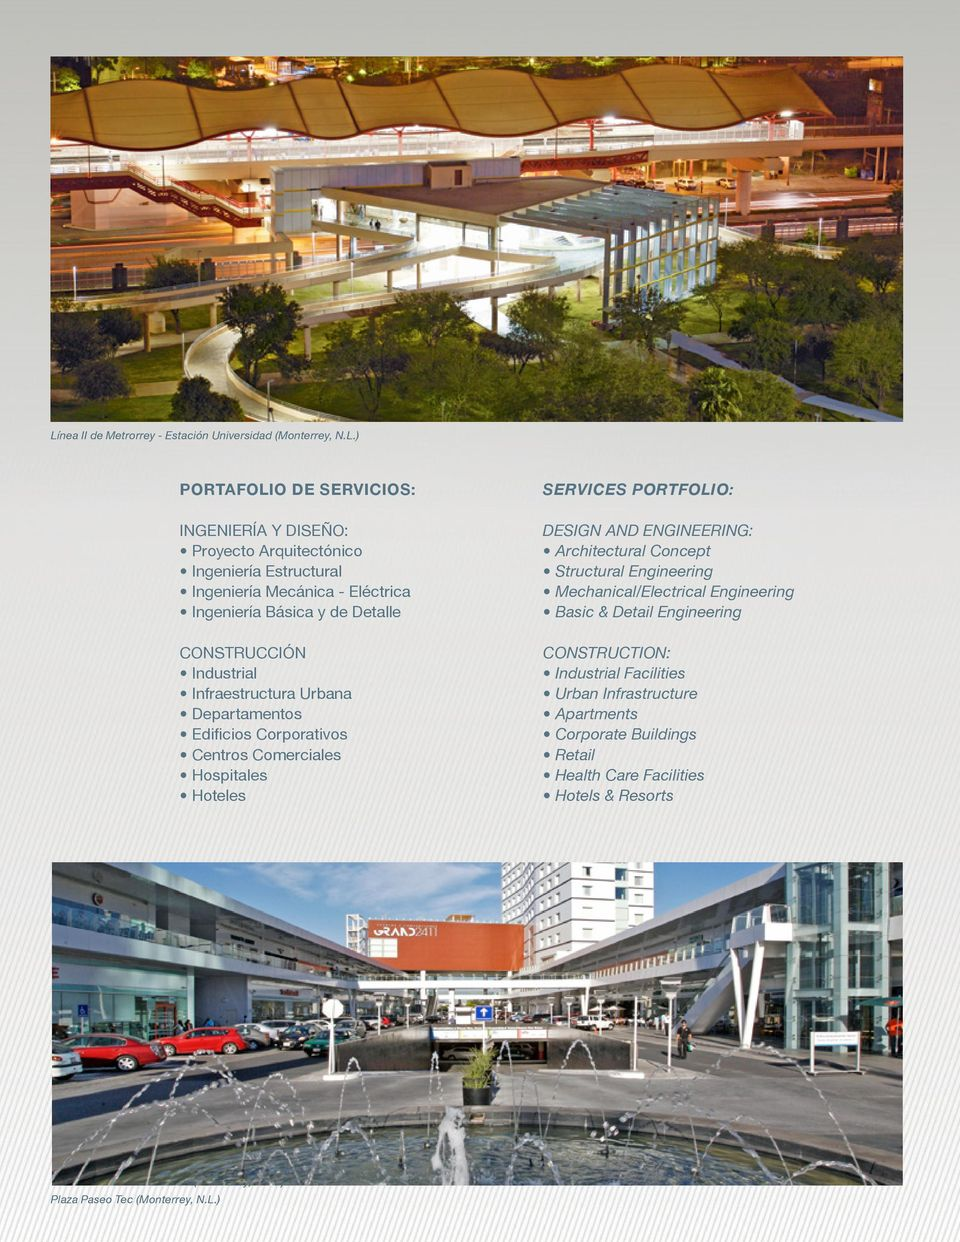 Comerciales Hospitales Hoteles Services Portfolio: DESIGN AND Engineering: Architectural Concept Structural Engineering Mechanical/Electrical Engineering Basic &